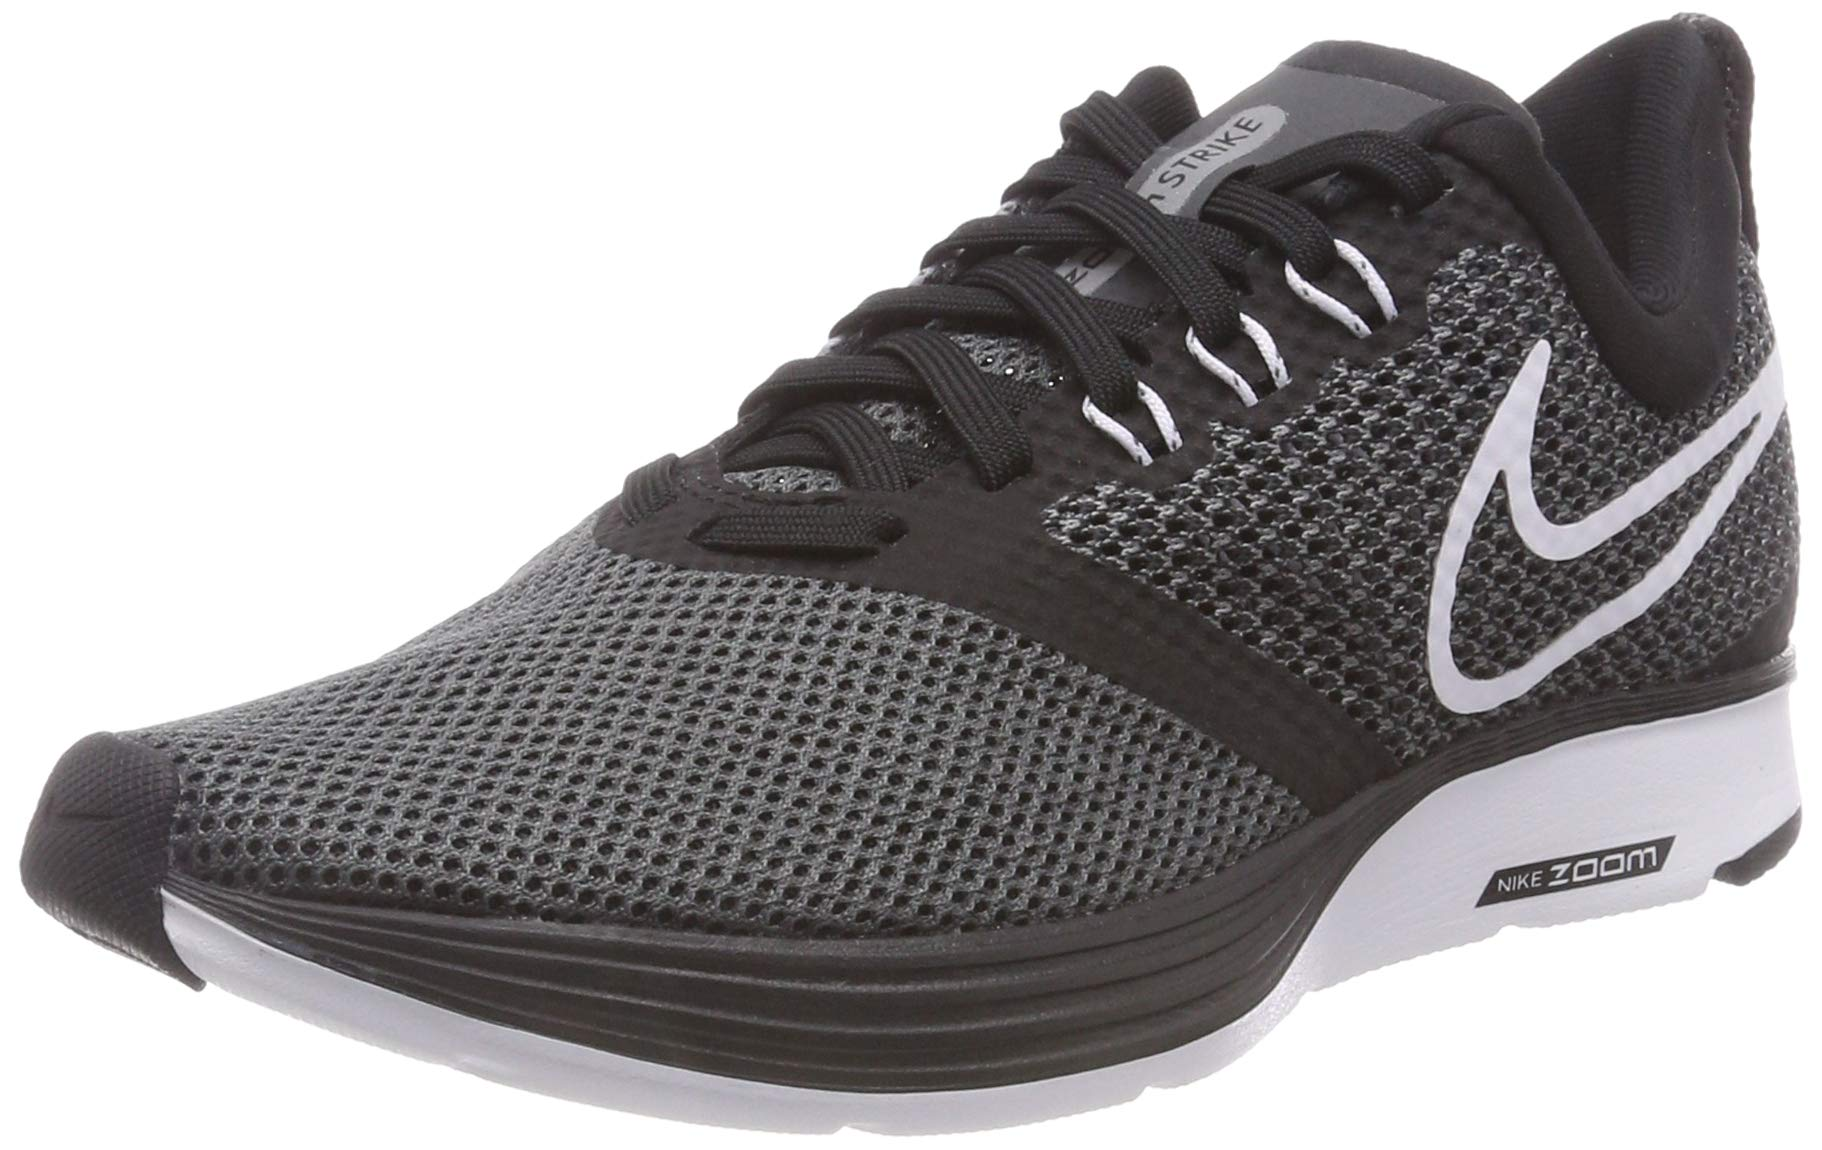 Nike Womens Zoom Strike Black/White DRK Gry/Anthracite Size 6